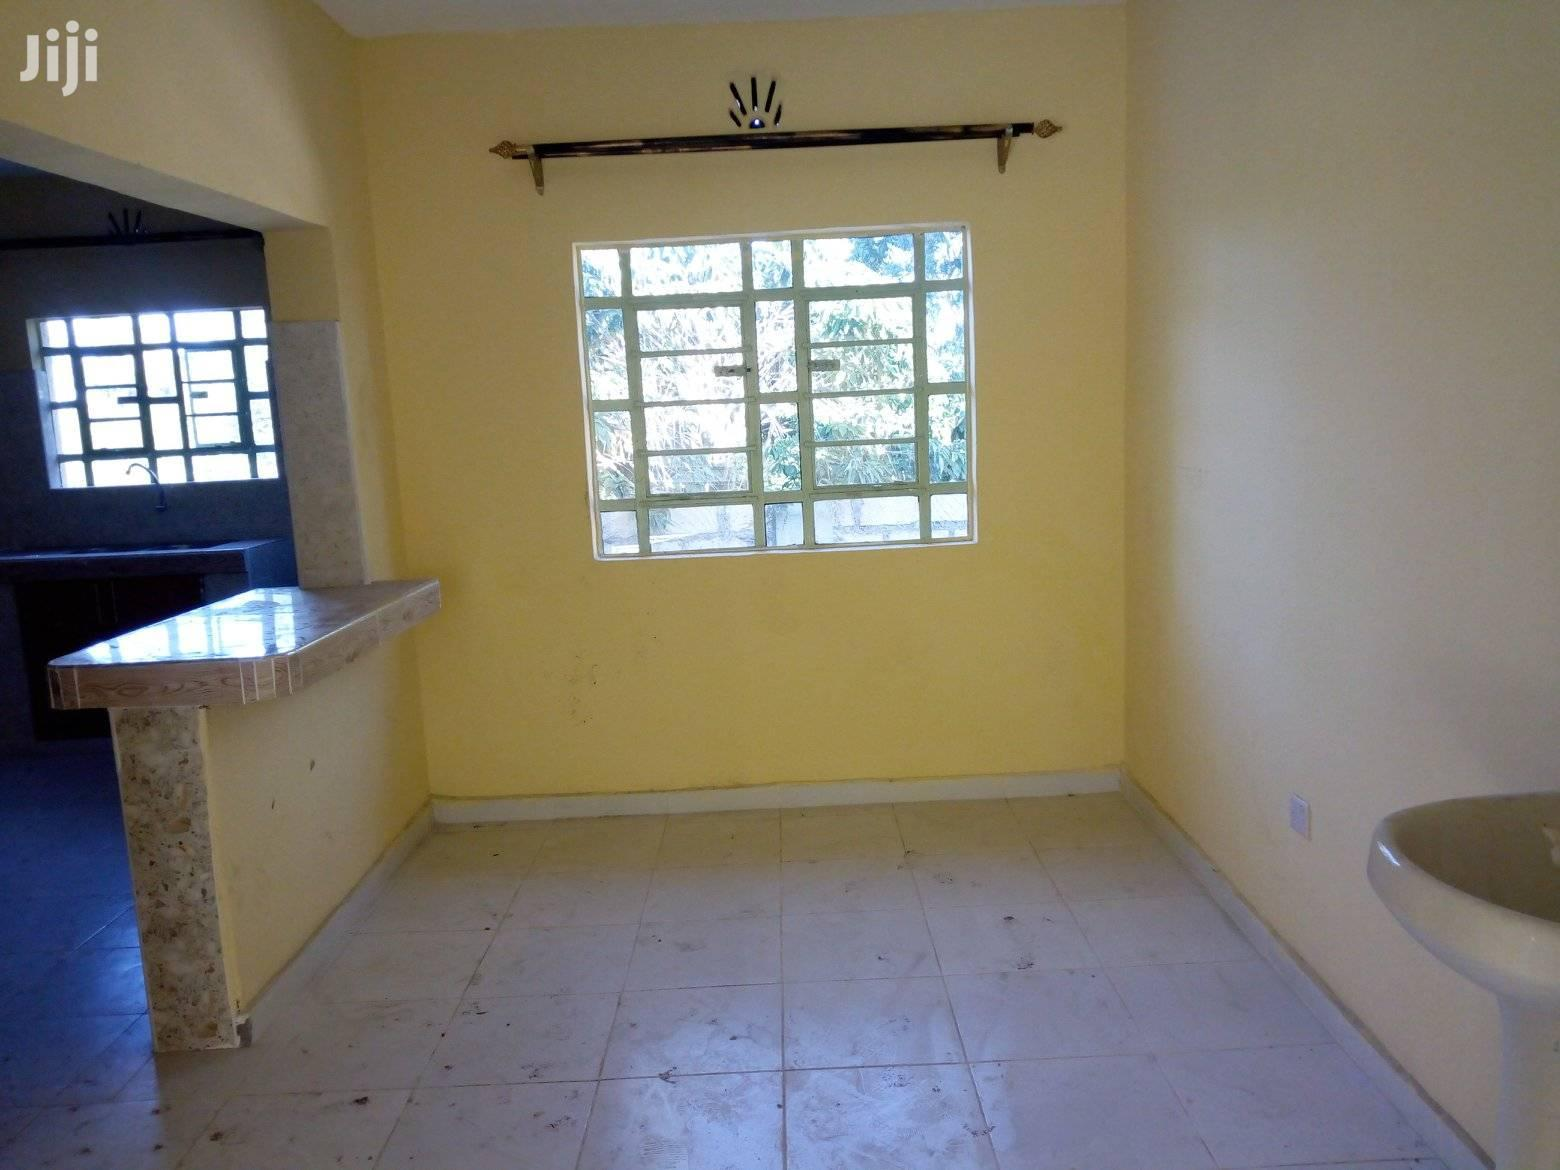 Three Bedrooms Bungalow For Sale In Ngong   Houses & Apartments For Sale for sale in Ngong, Kajiado, Kenya